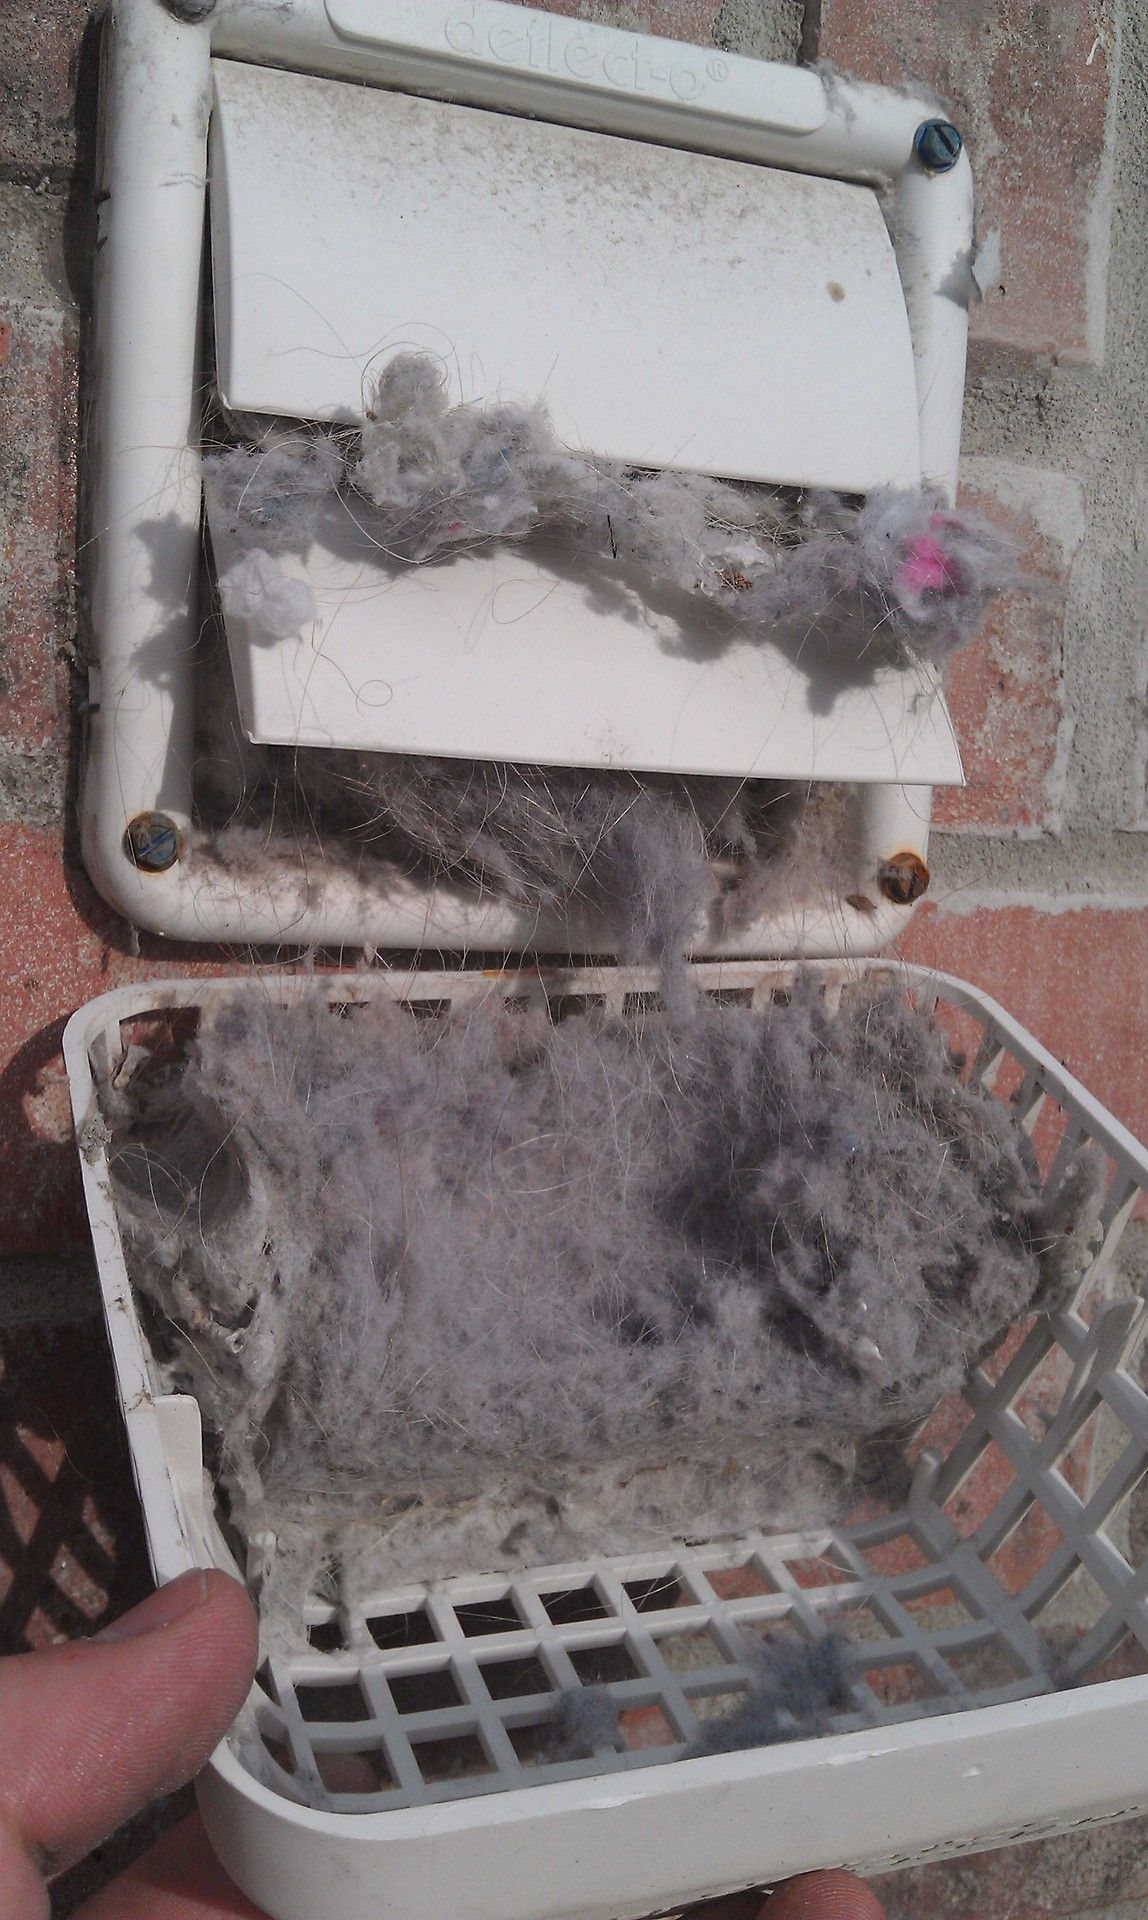 Get Rid Of This Tiny Squares Type Of Dryer Vent Cover They Might Keep Animals Out But They Cause Lint To Build Up Dryer Vent Dryer Vent Cover Vent Covers Diy